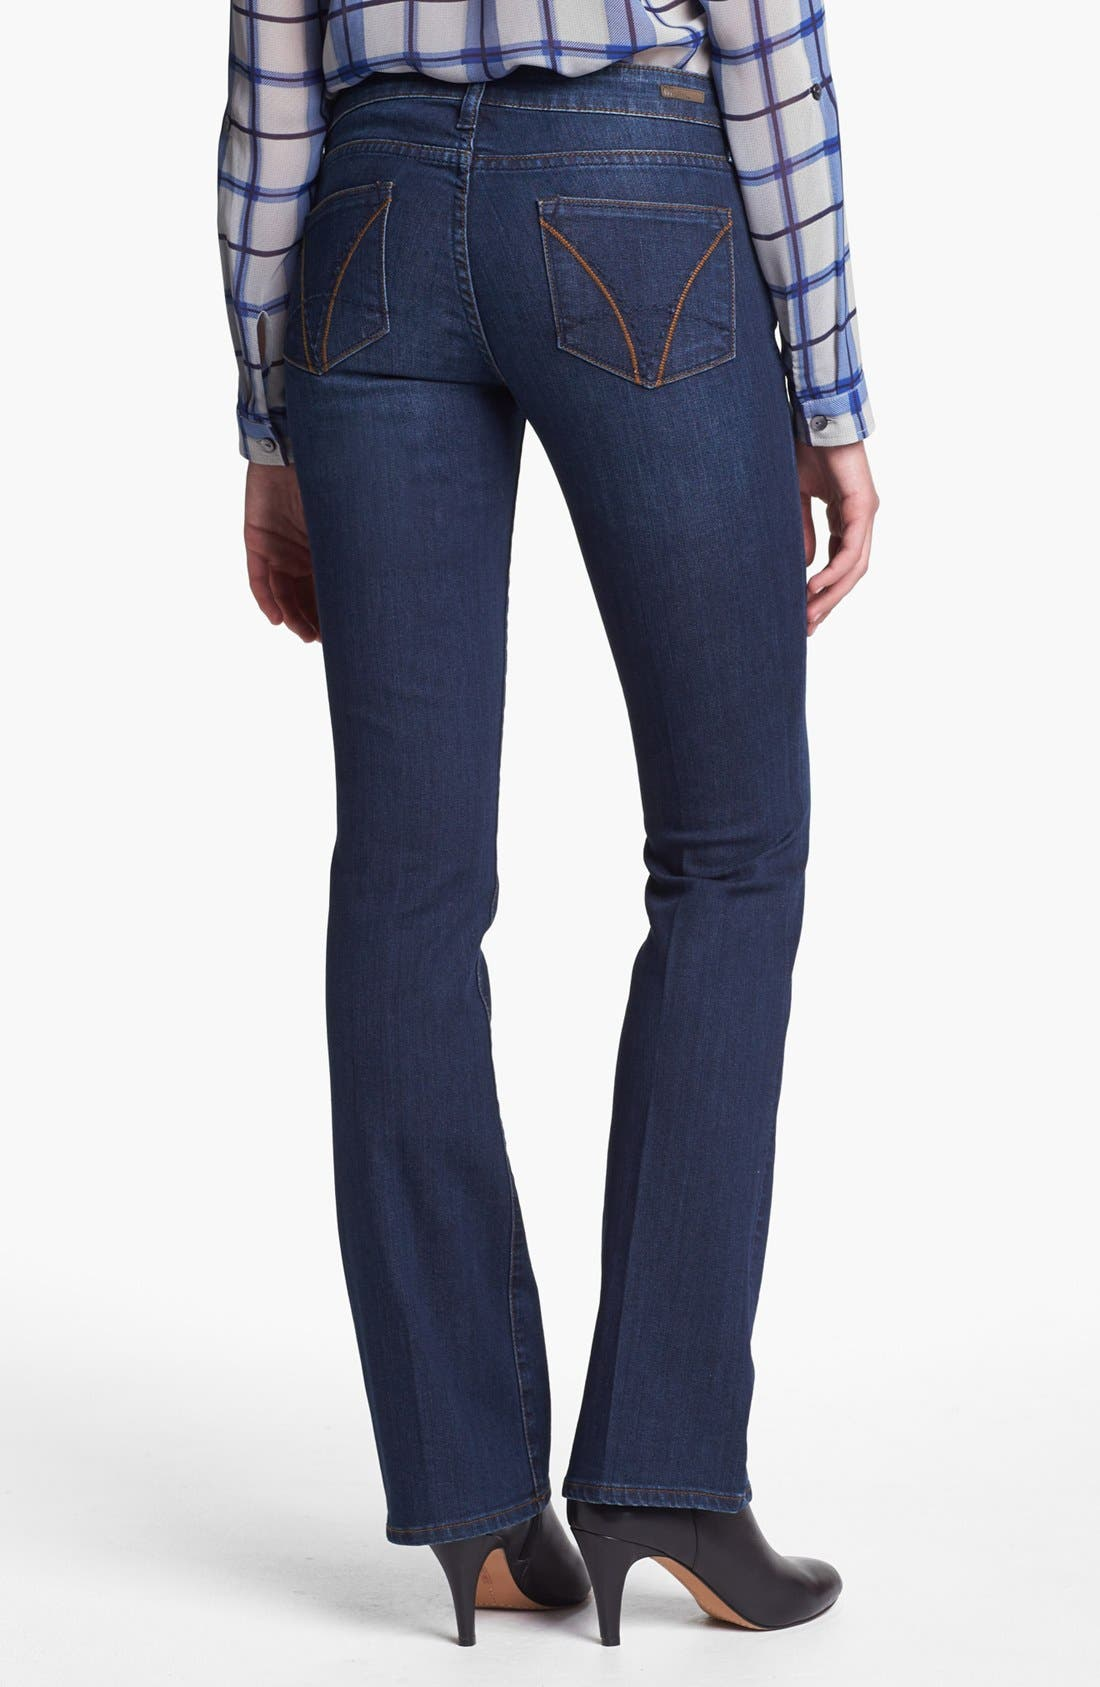 Alternate Image 2  - KUT from the Kloth 'Farrah' Mini Bootcut Jeans (Whim) (Regular & Petite)